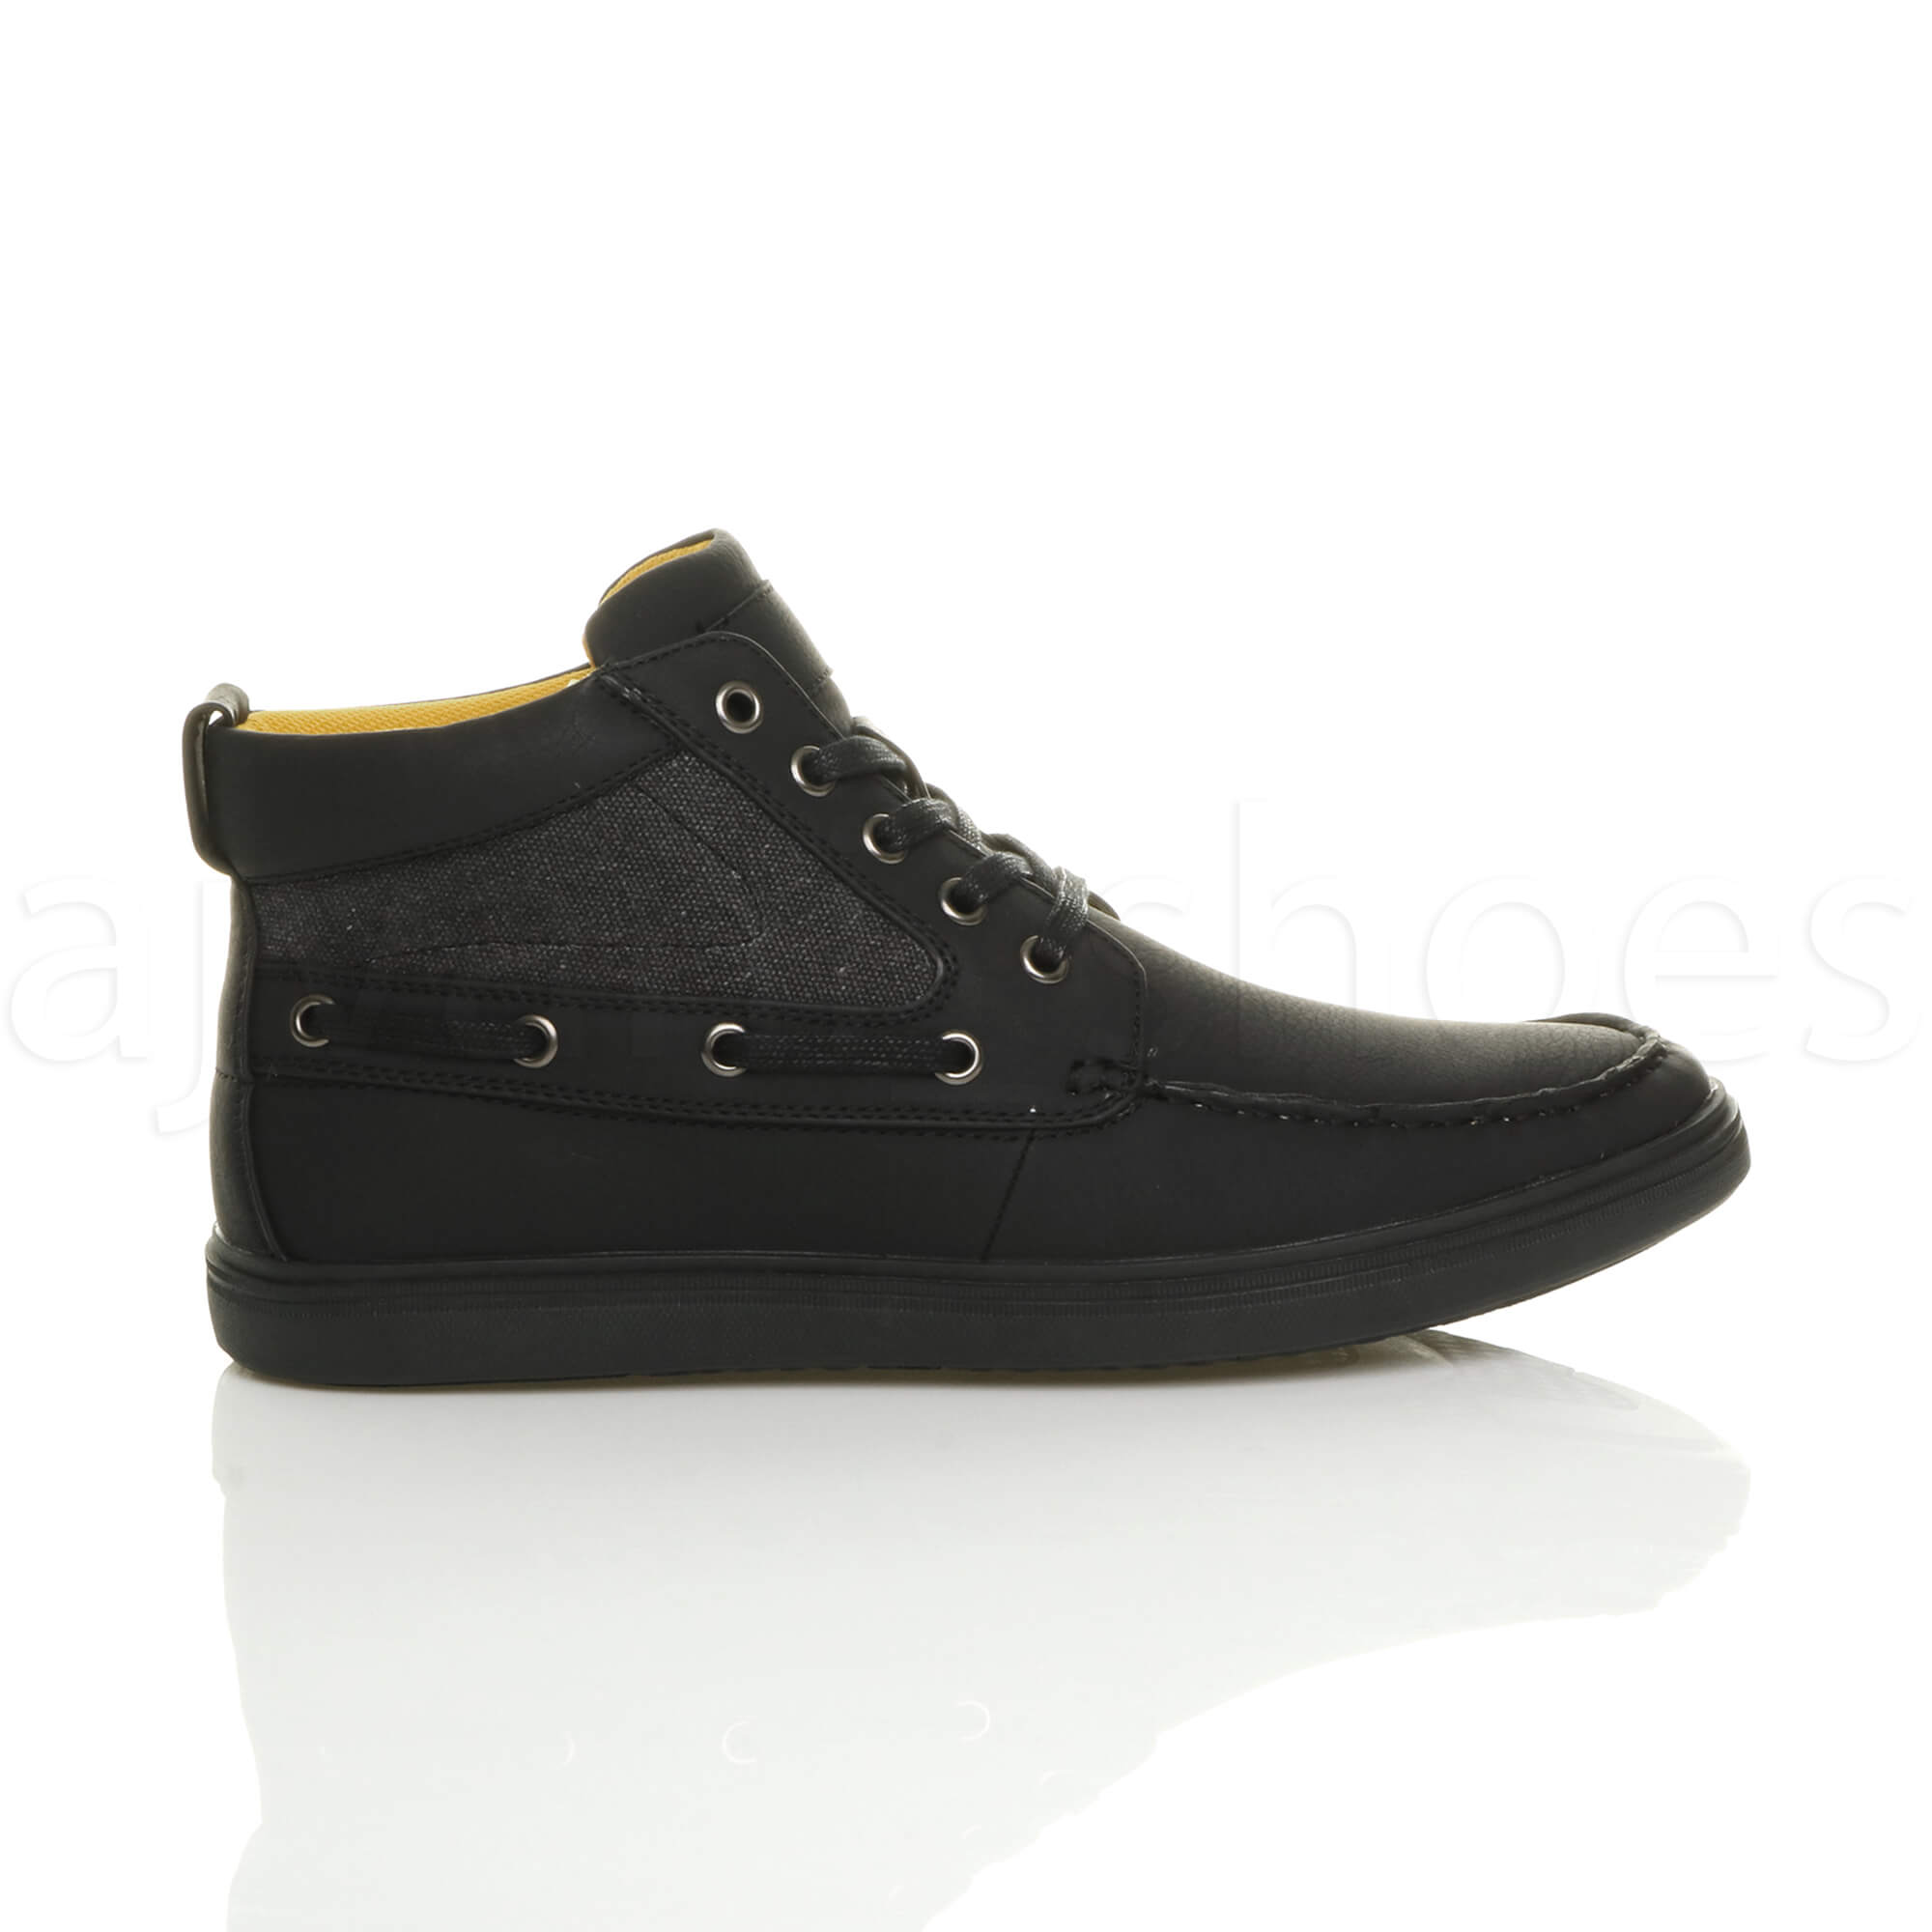 MENS-FLAT-LACE-UP-CASUAL-BOAT-CONTRAST-HI-TOP-TRAINERS-ANKLE-BOOTS-PUMPS-SIZE thumbnail 3